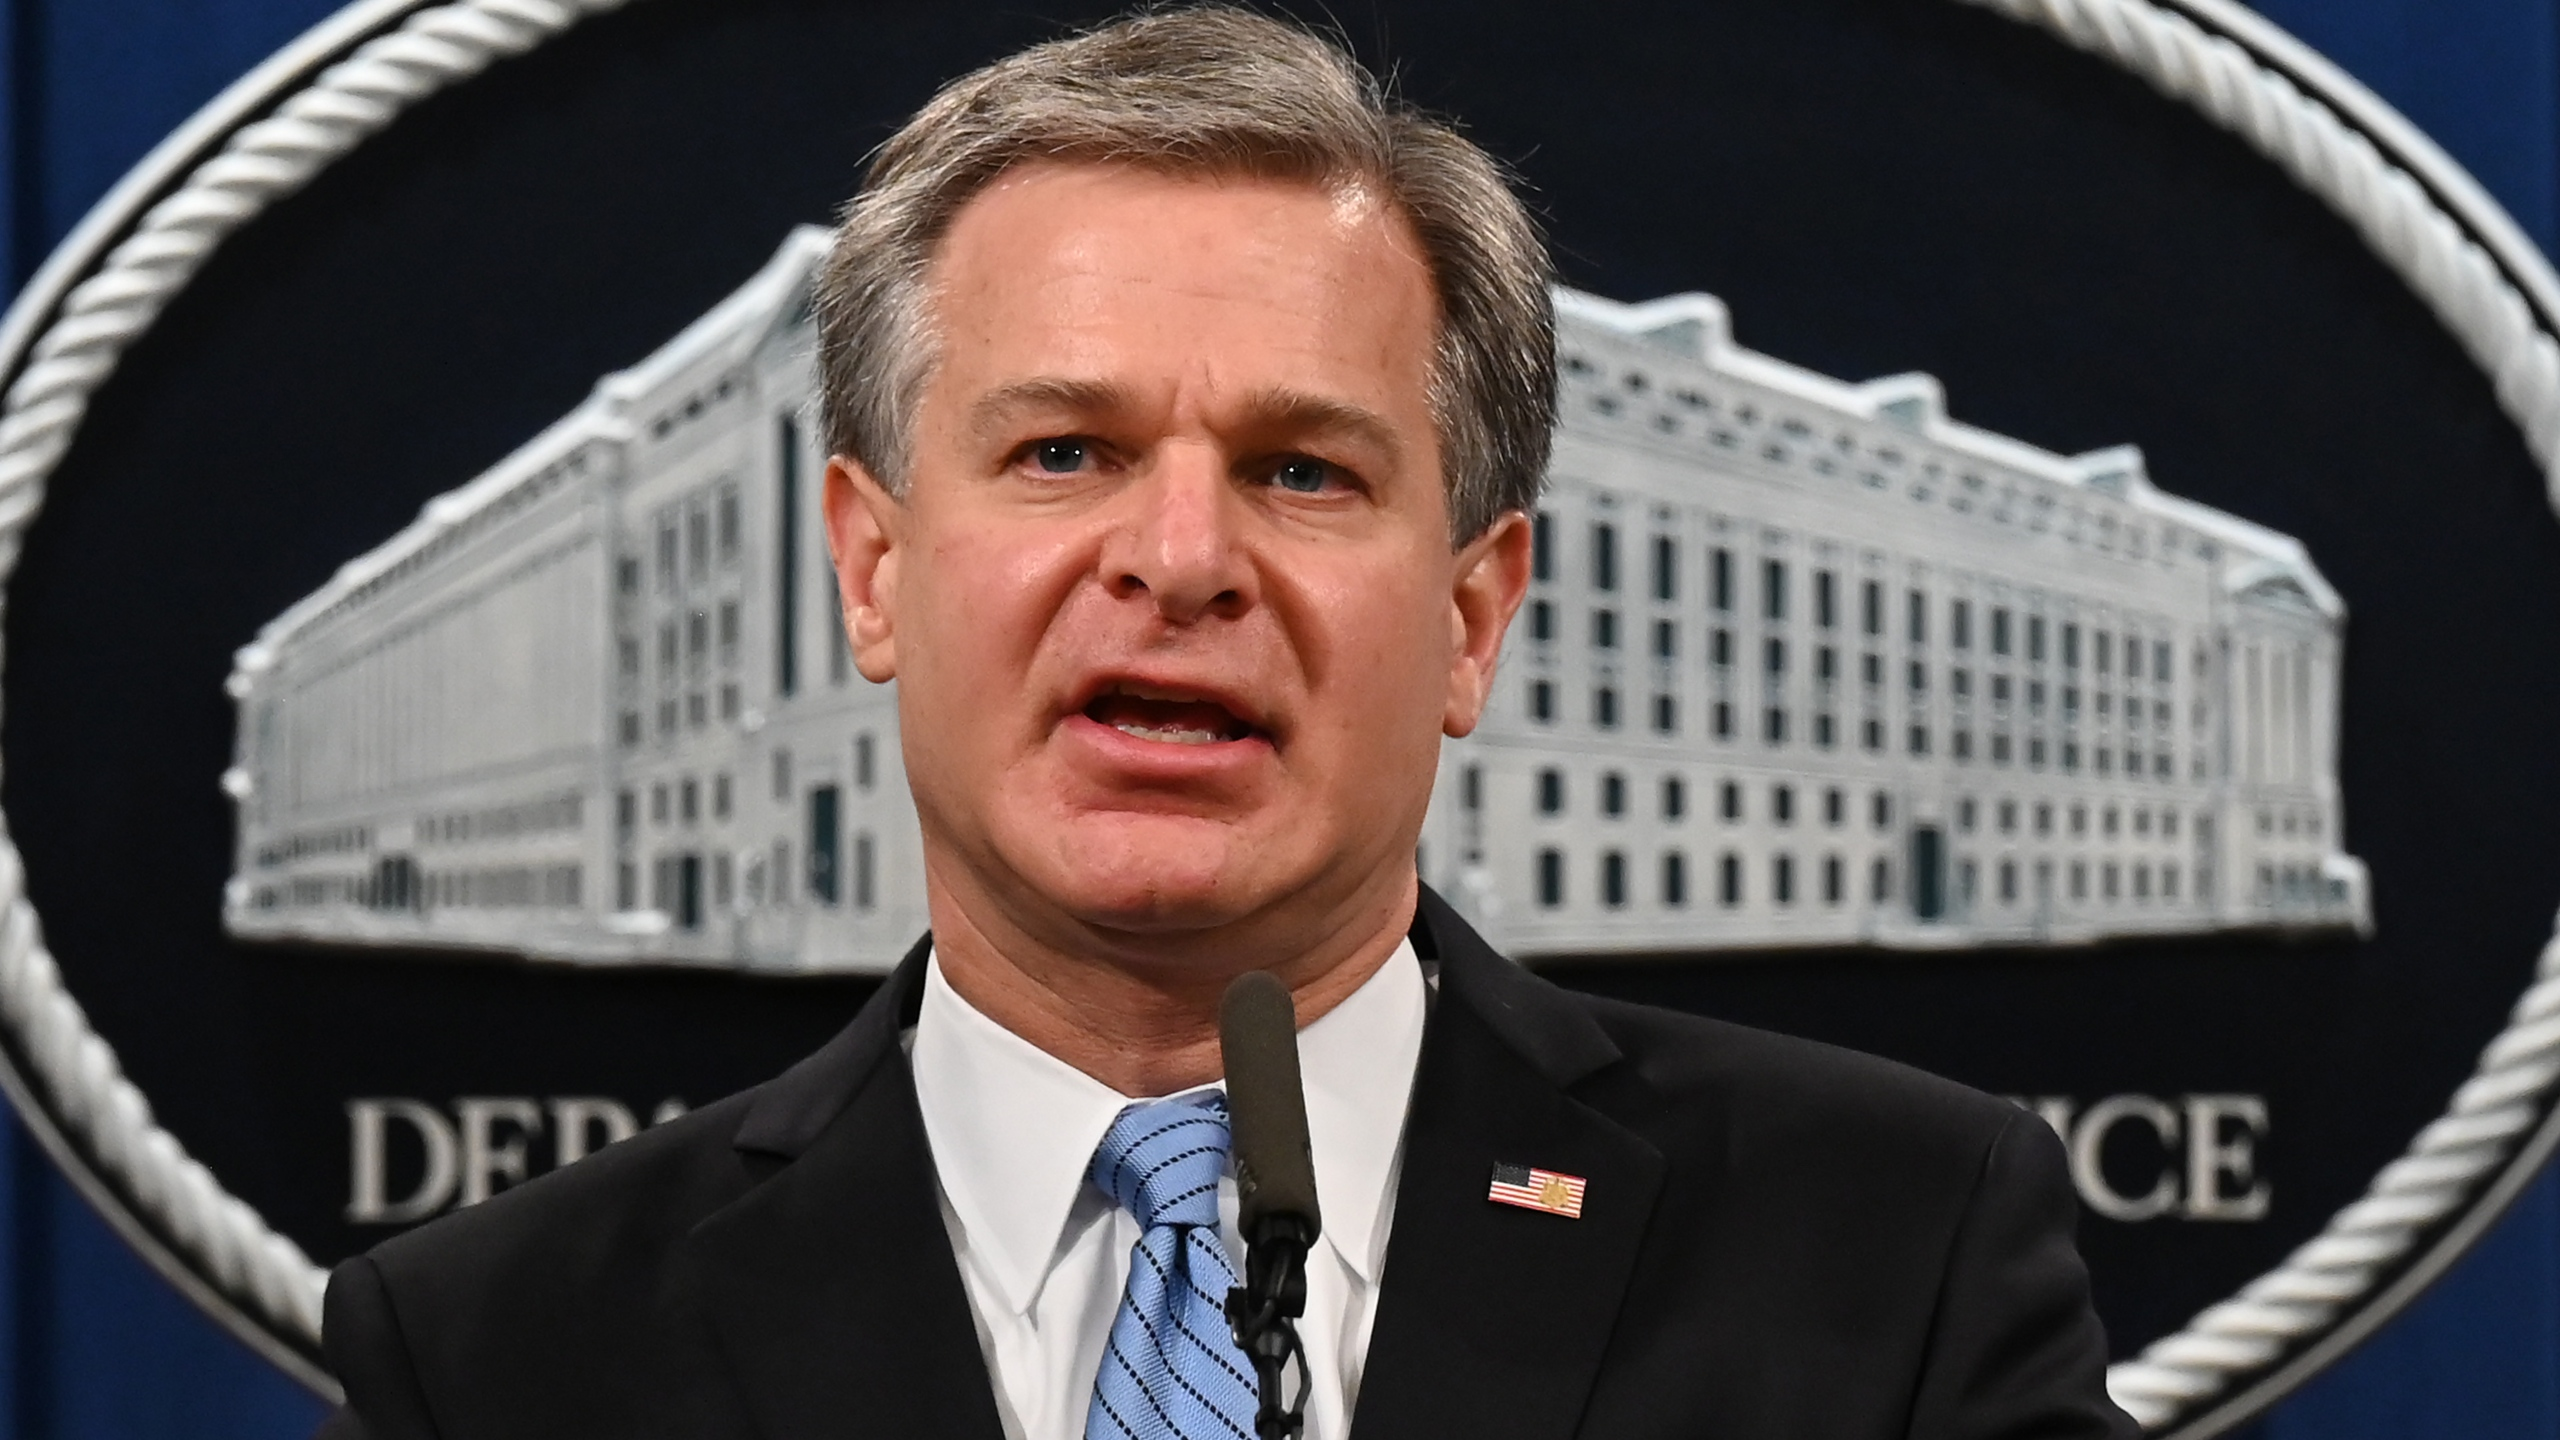 FBI Director Christopher Wray speaks during a press conference on a national security matter at the Department of Justice on Oct. 7, 2020. (JIM WATSON/POOL/AFP via Getty Images)